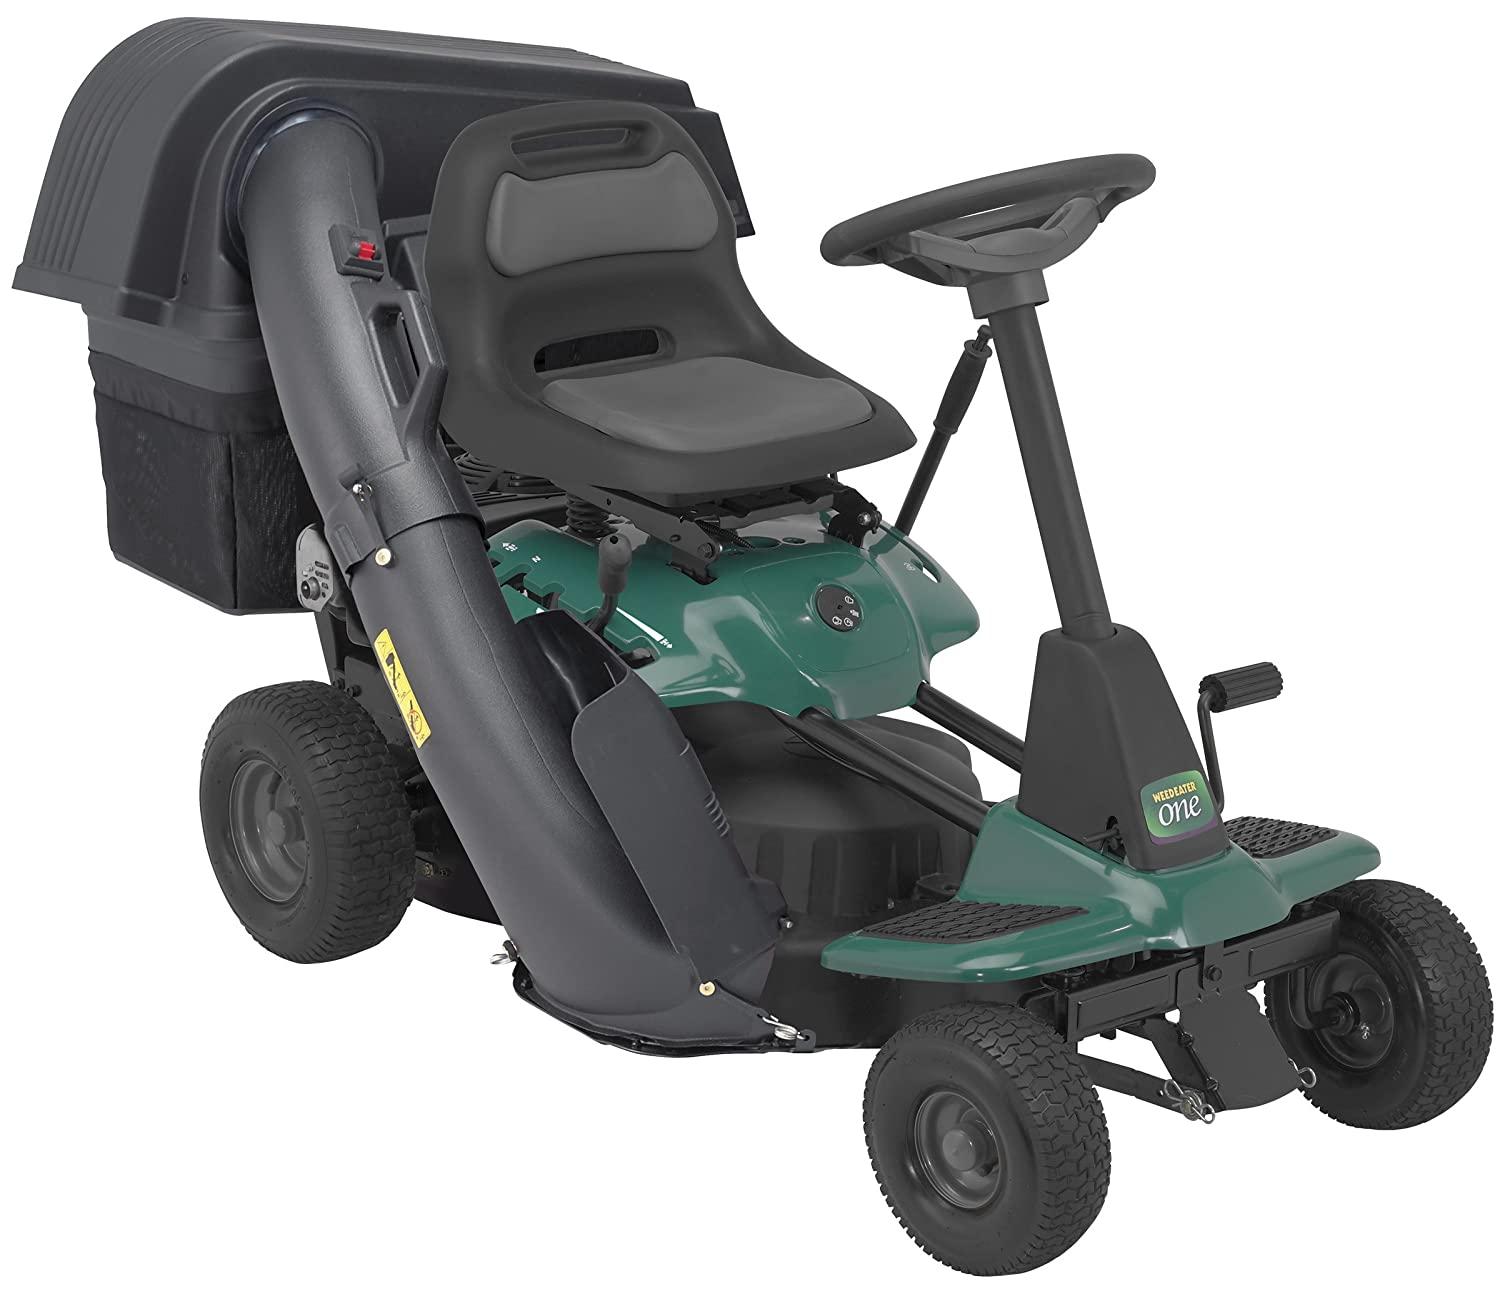 weed eater lawn tractor. amazon.com : weed eater 960730027 we-one 26-inch two-bin bagger kit grass catchers garden \u0026 outdoor lawn tractor e